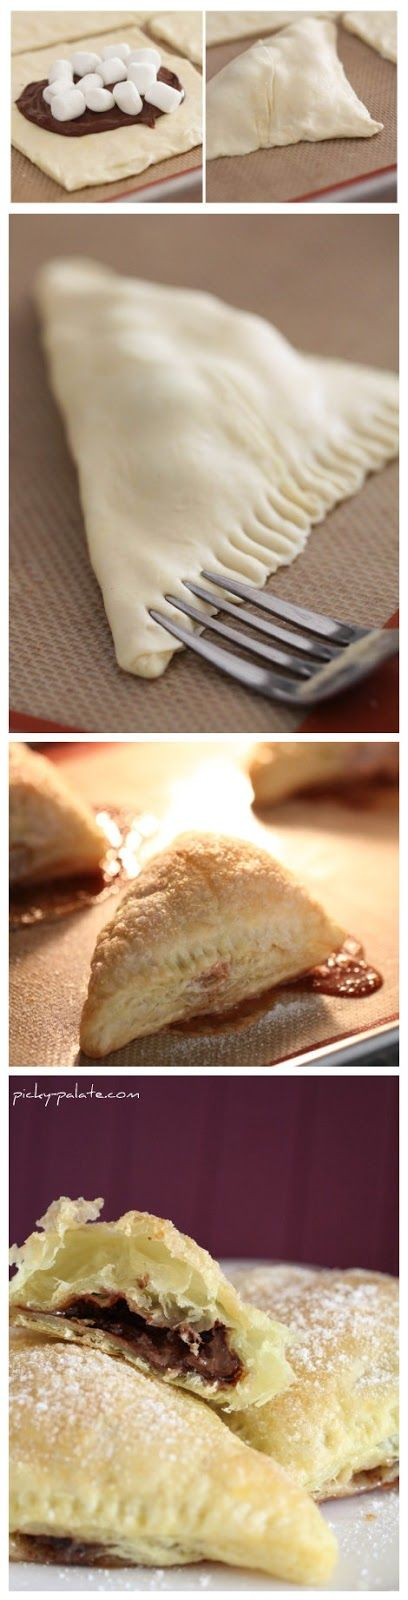 Nutella-Mallow Pillow Pockets | Sweet Tooth | Pinterest